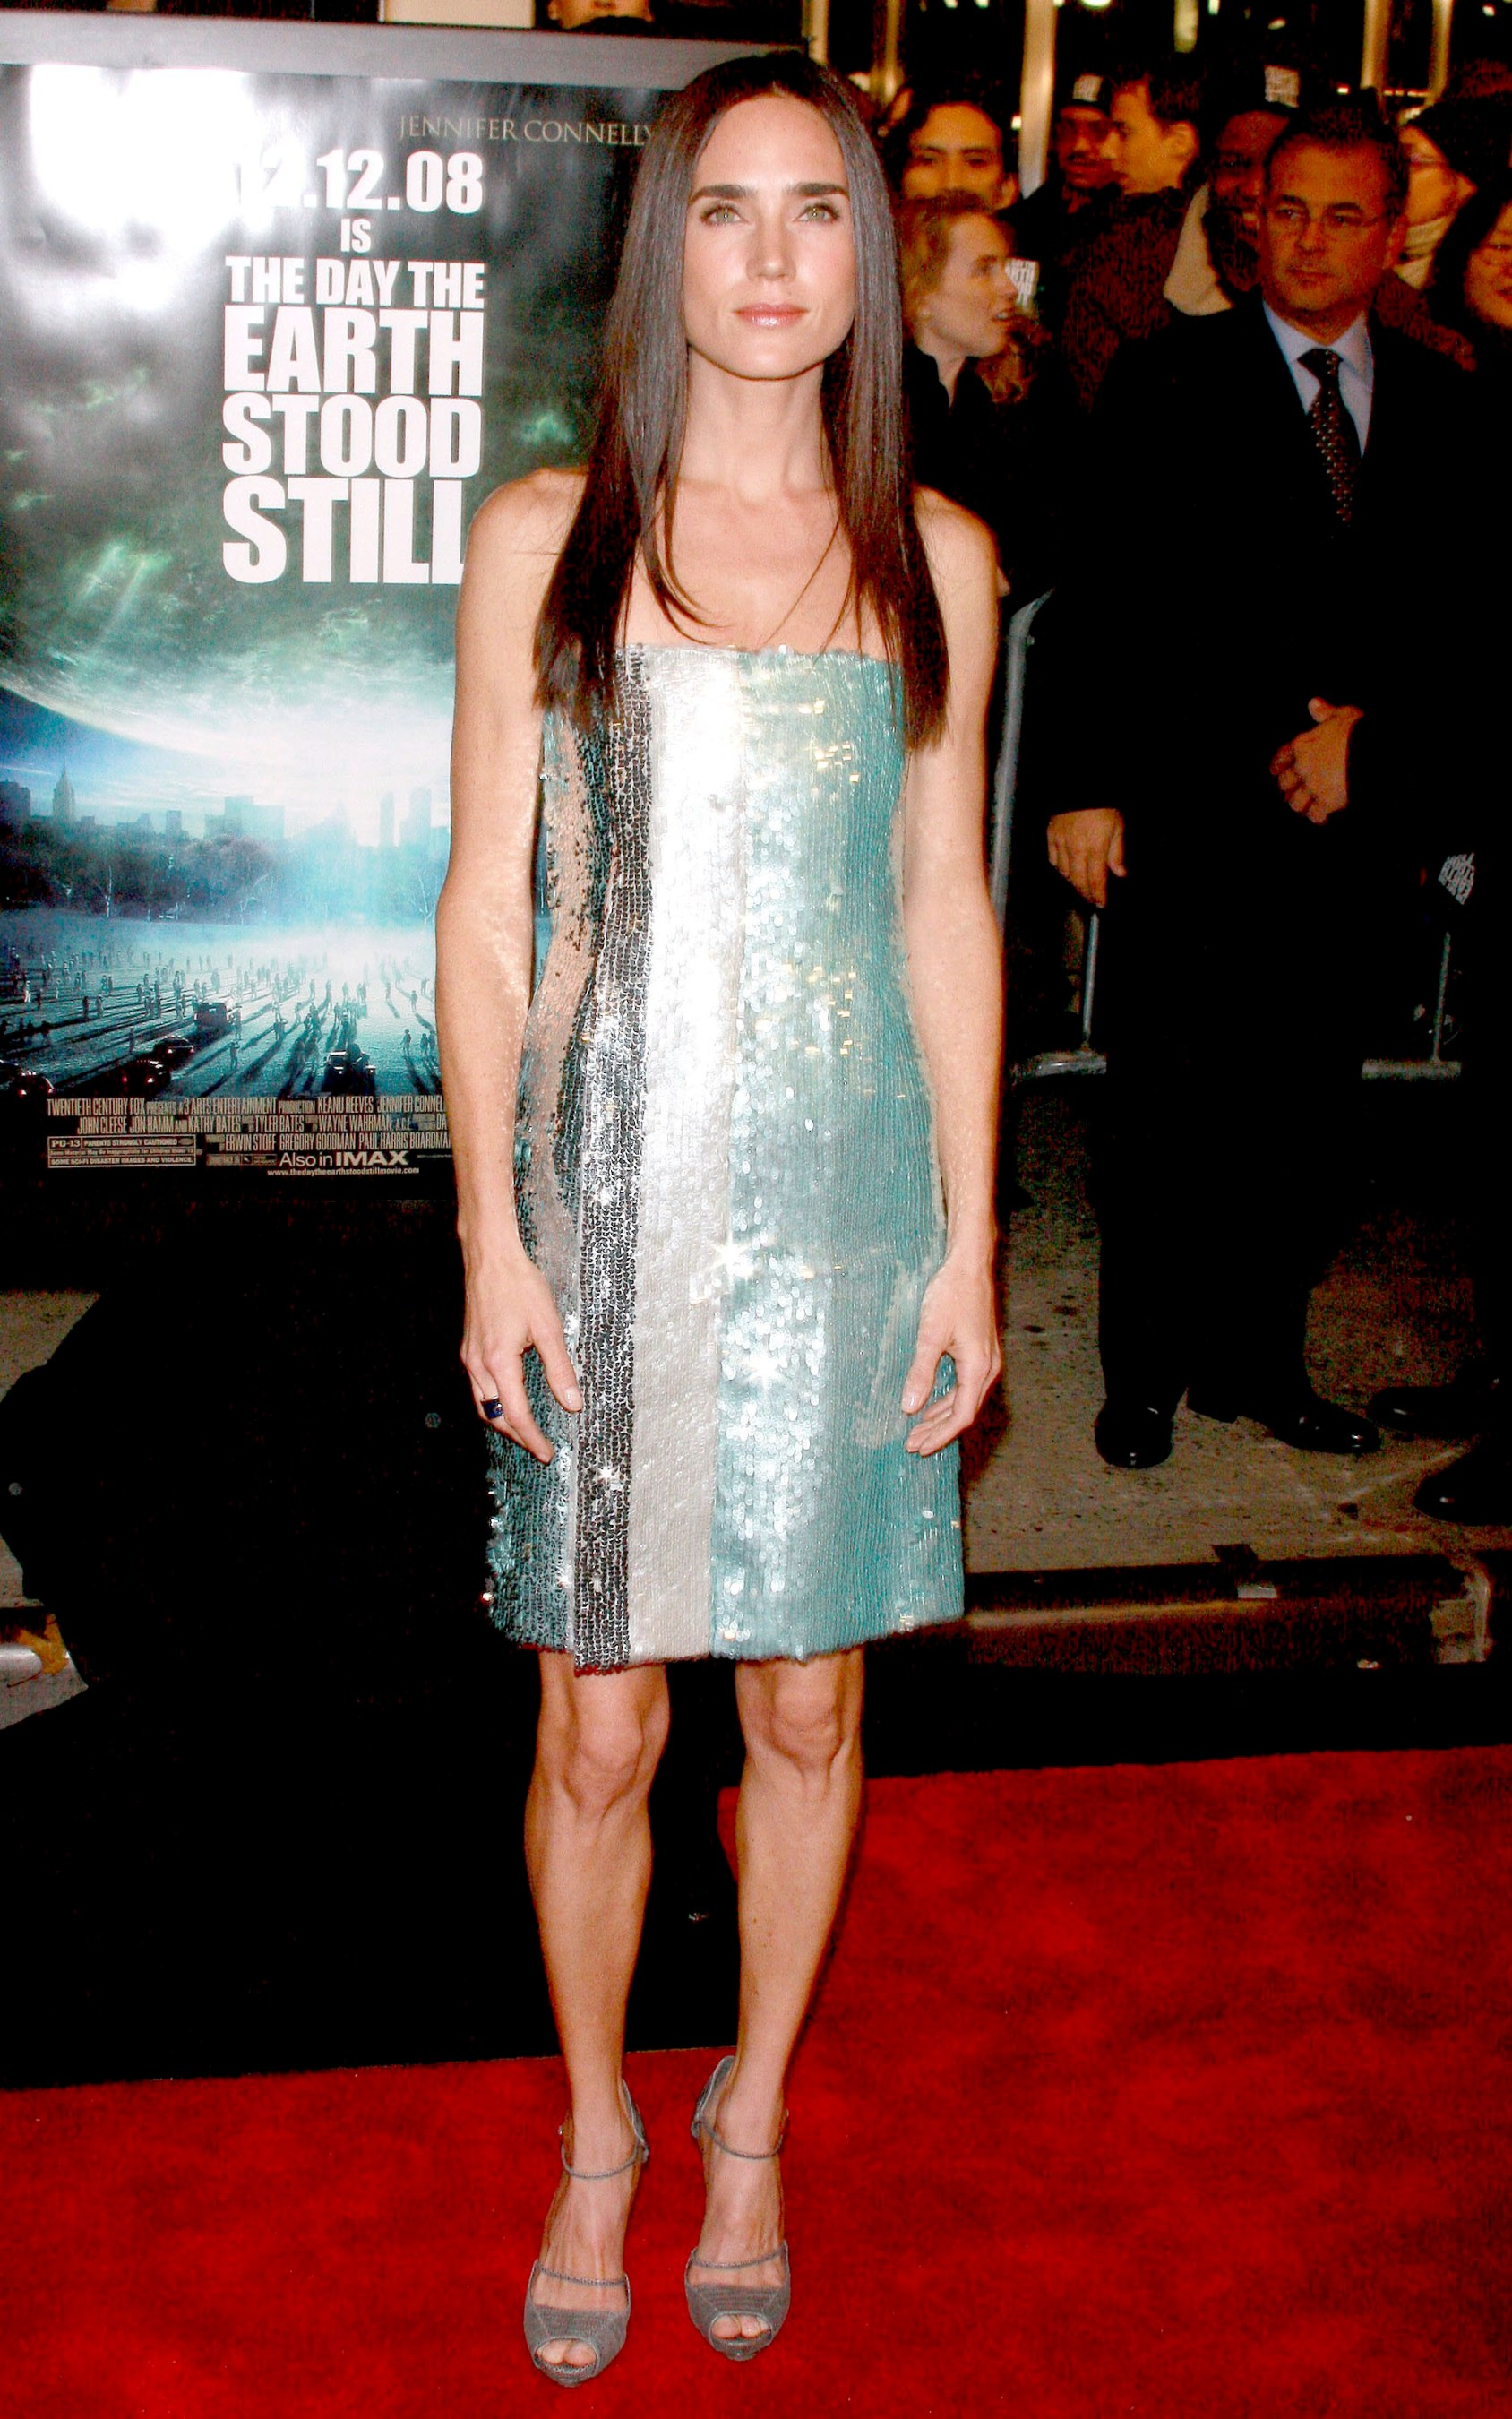 Jennifer Connelly photo gallery - high quality pics of ...